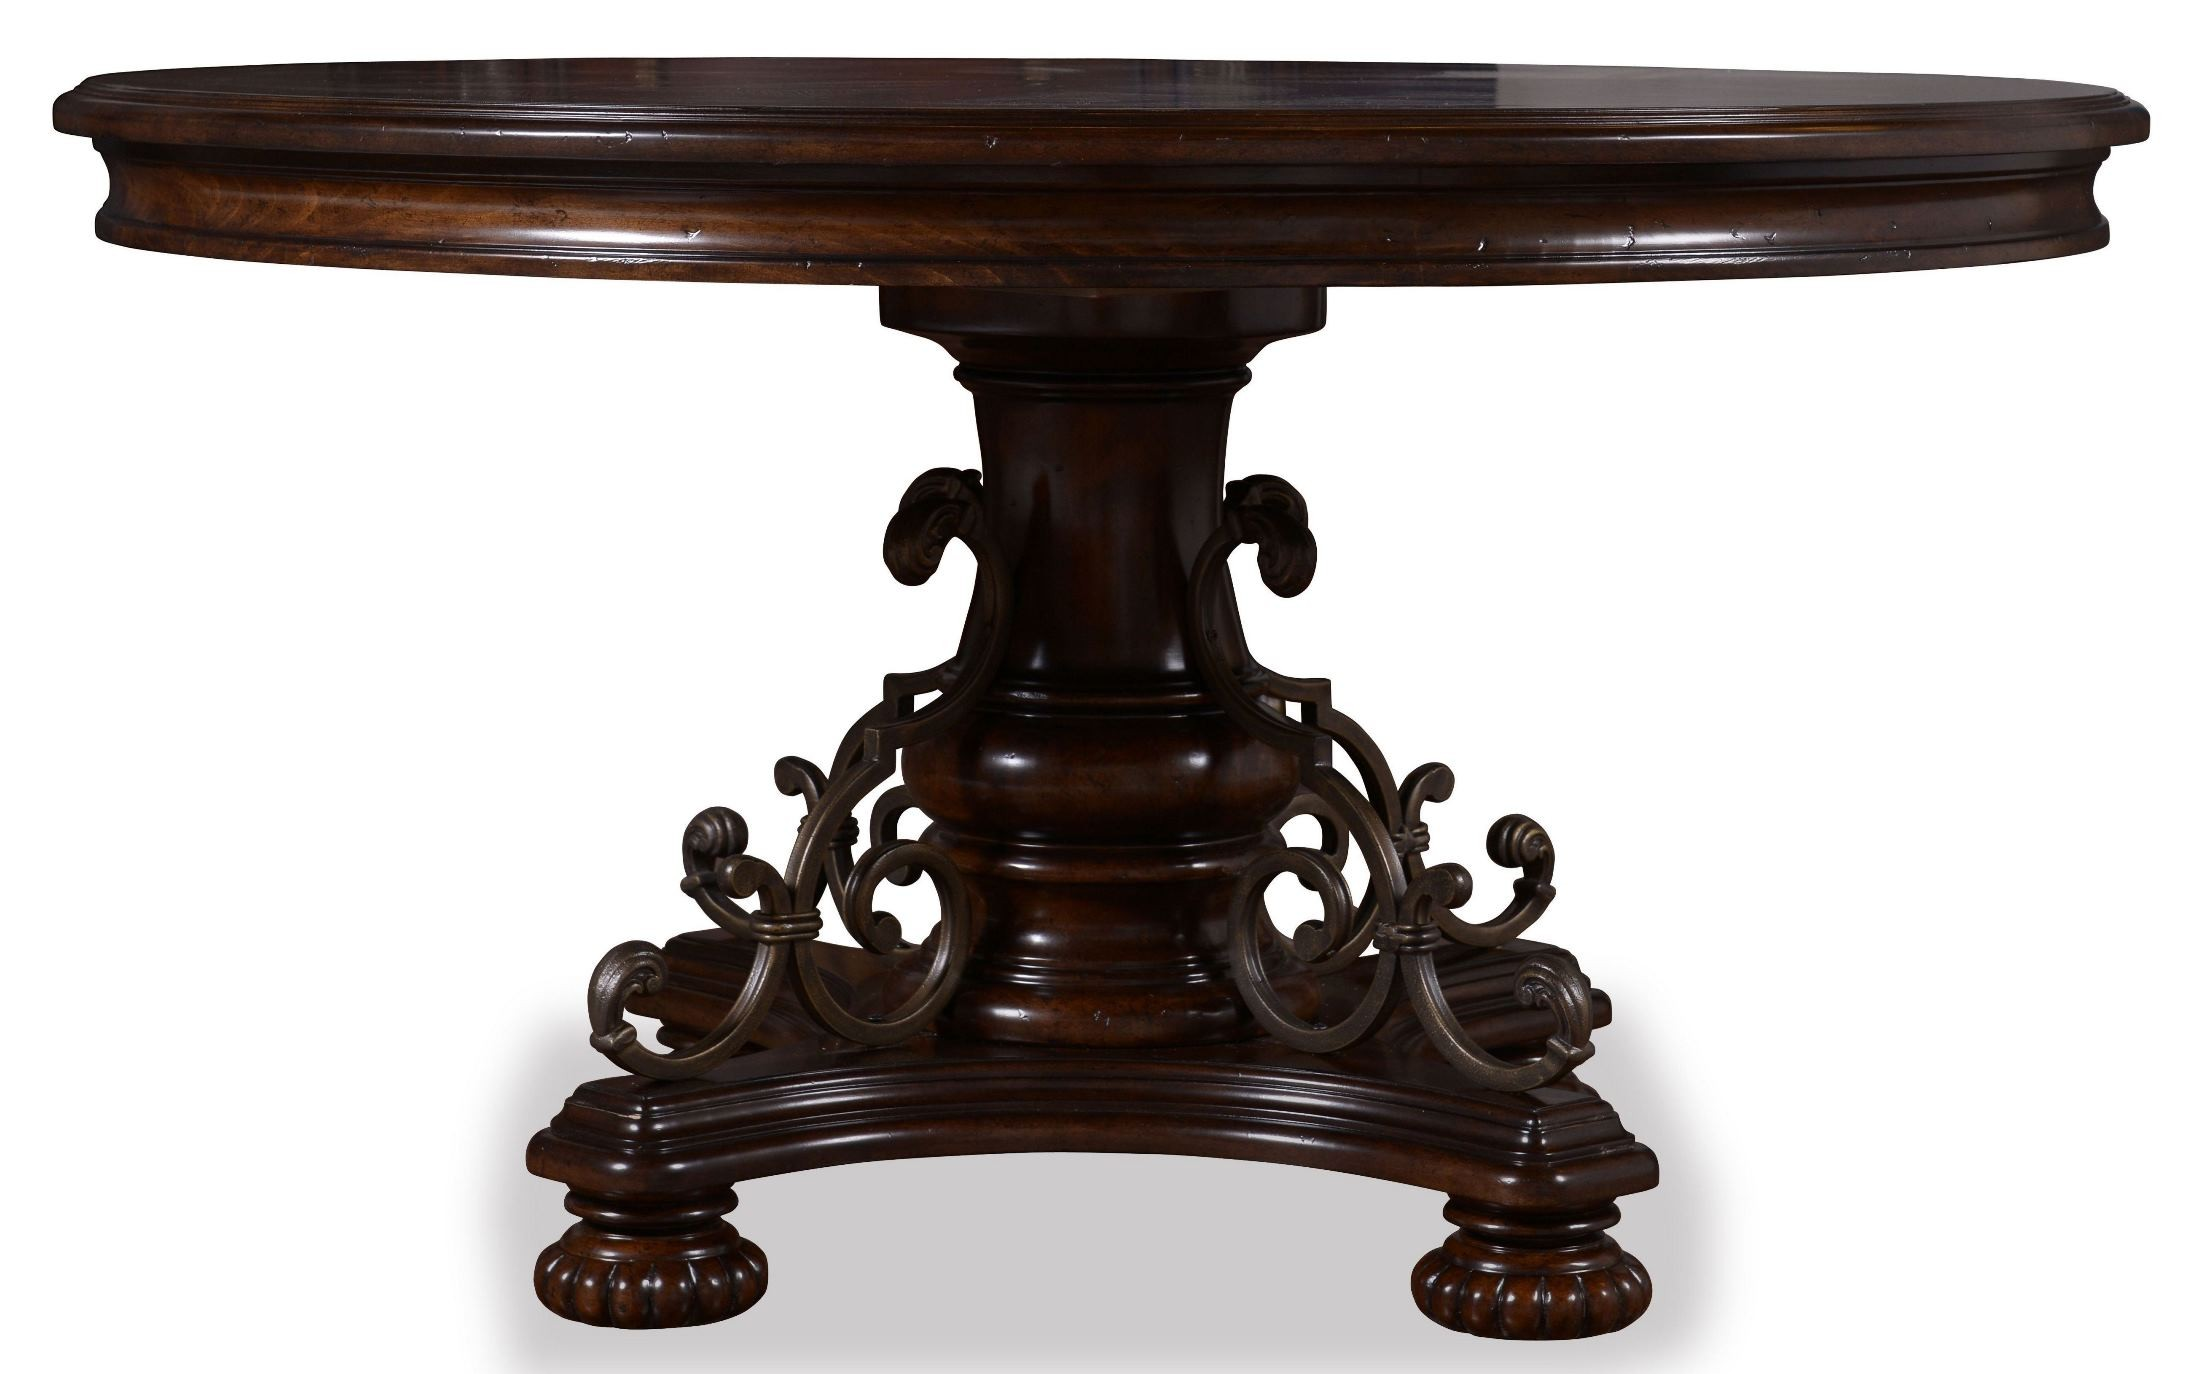 valencia counter height round dining table from art coleman furniture. Black Bedroom Furniture Sets. Home Design Ideas